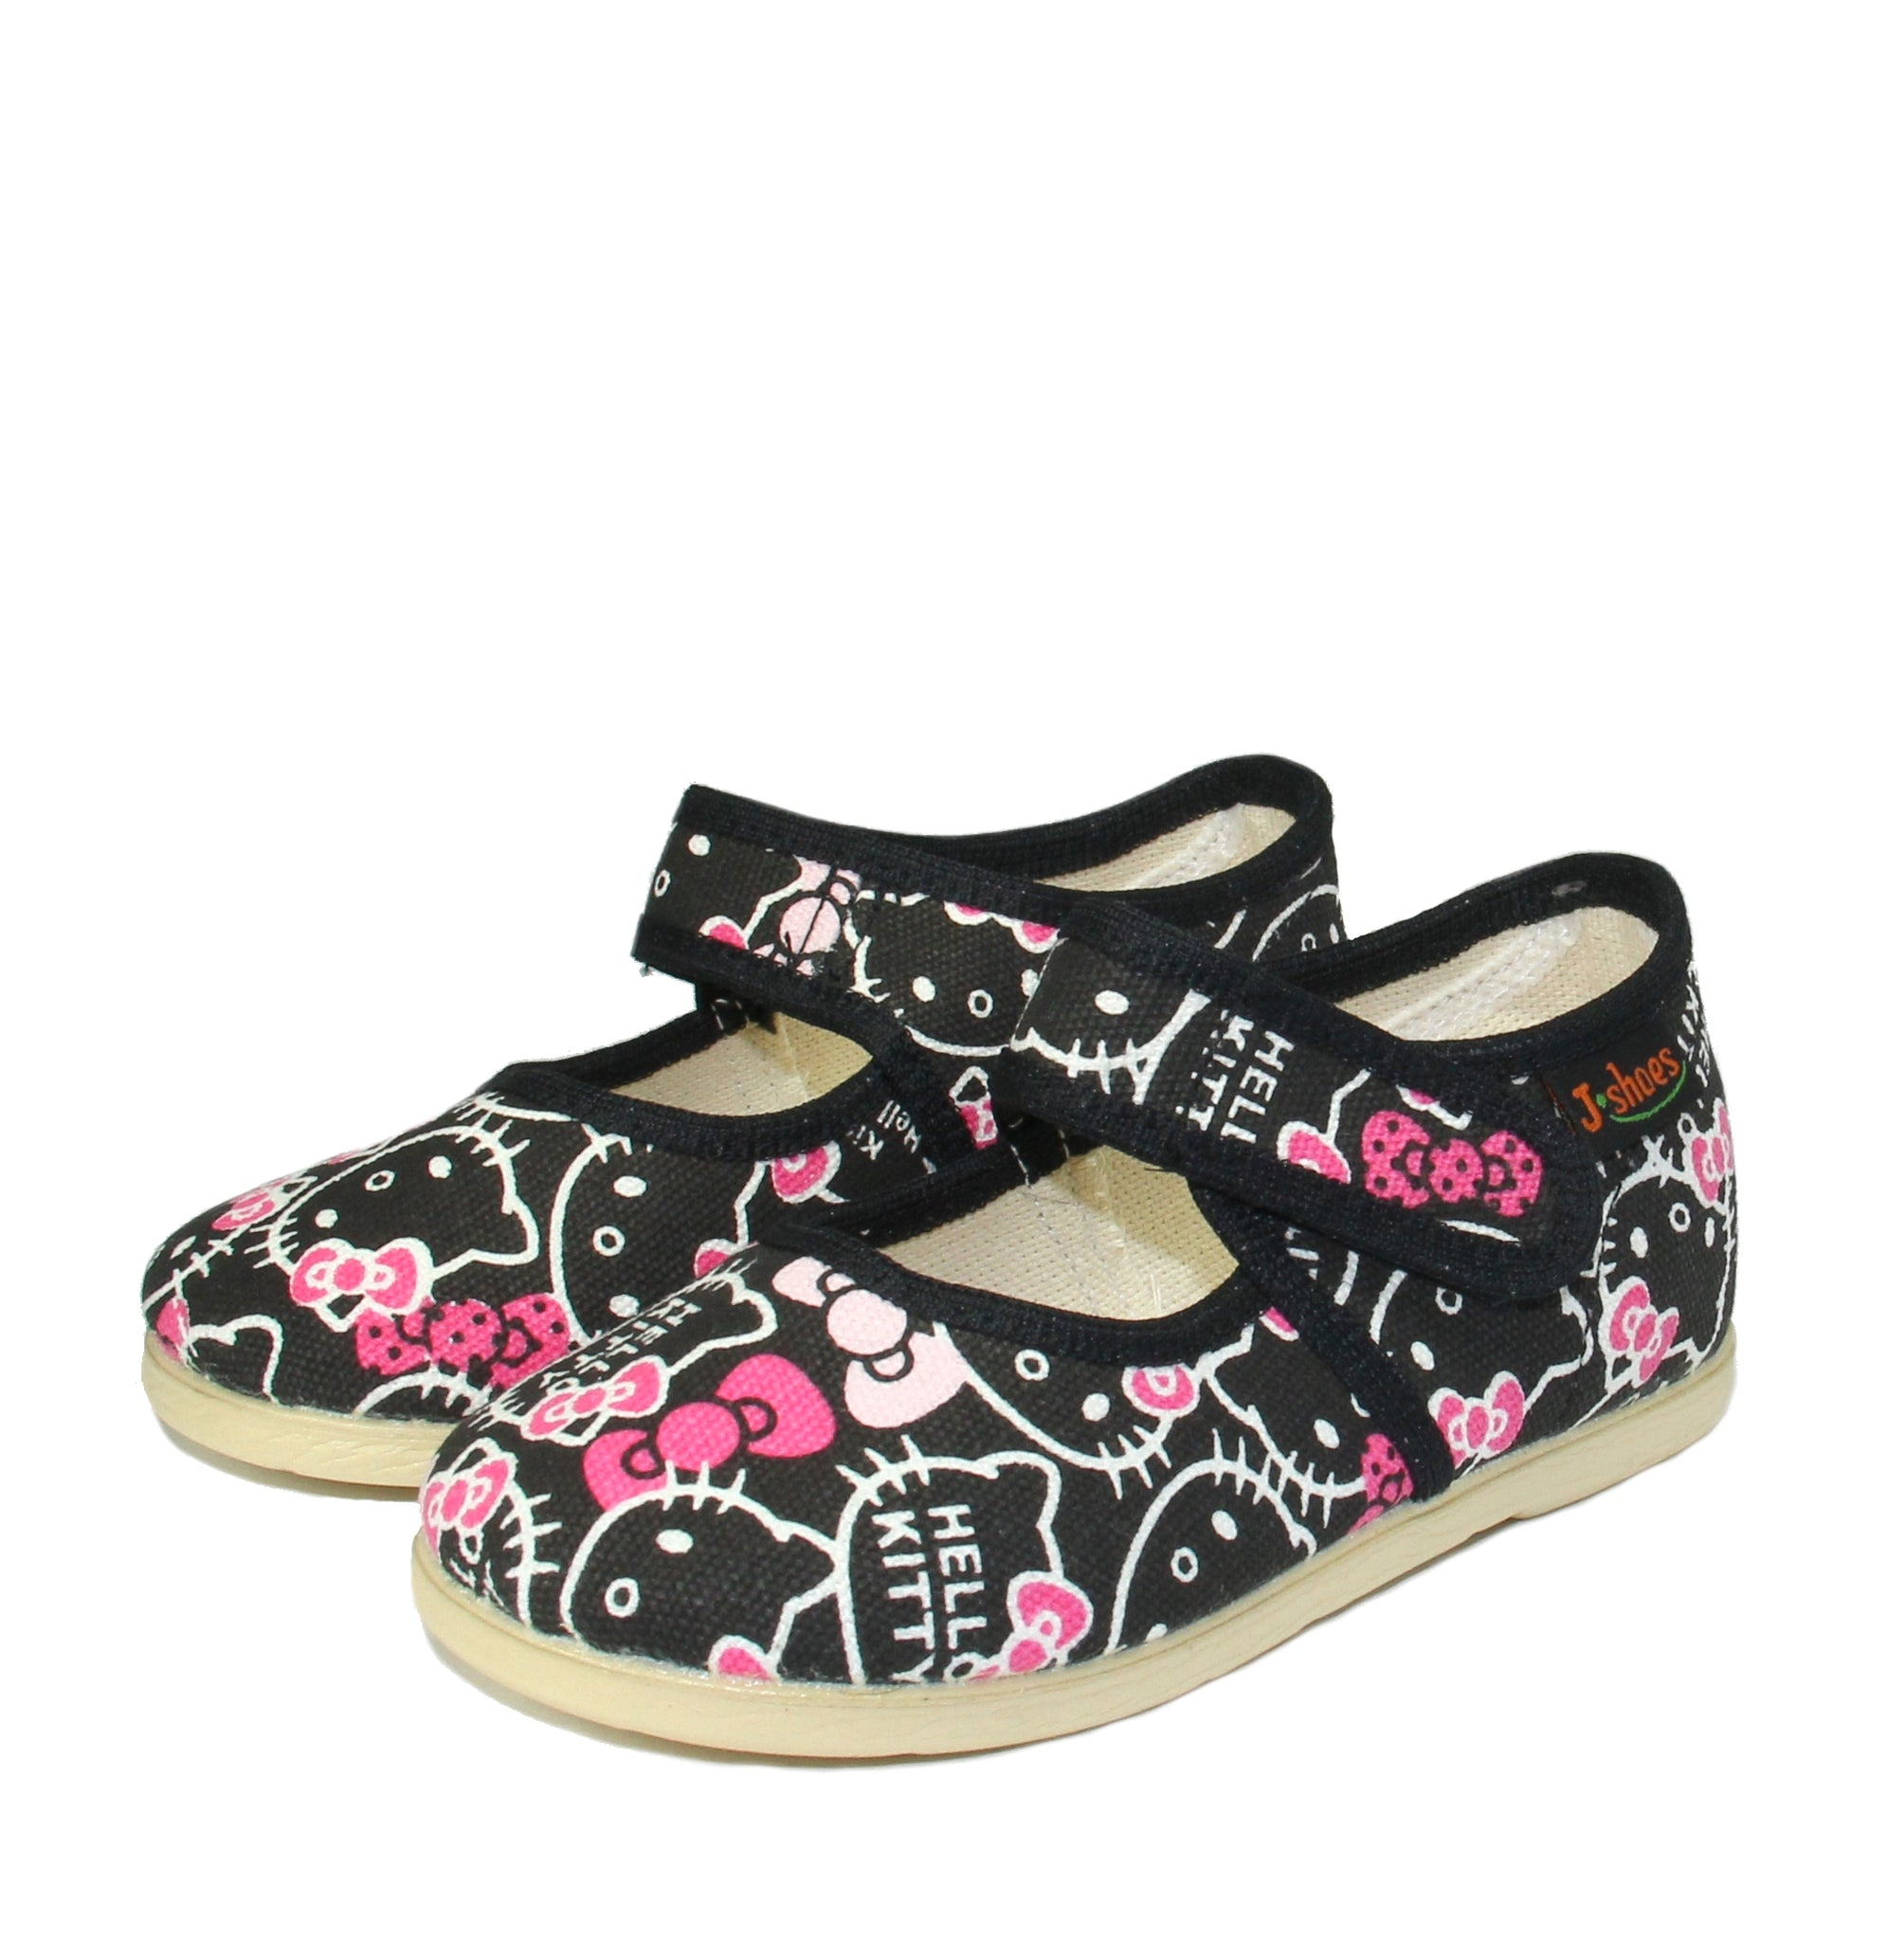 2e6dbb54a93 Toddler Girls Pure Cotton Orthopedic Hello Kitty Design Slippers - Just Be  Special ...